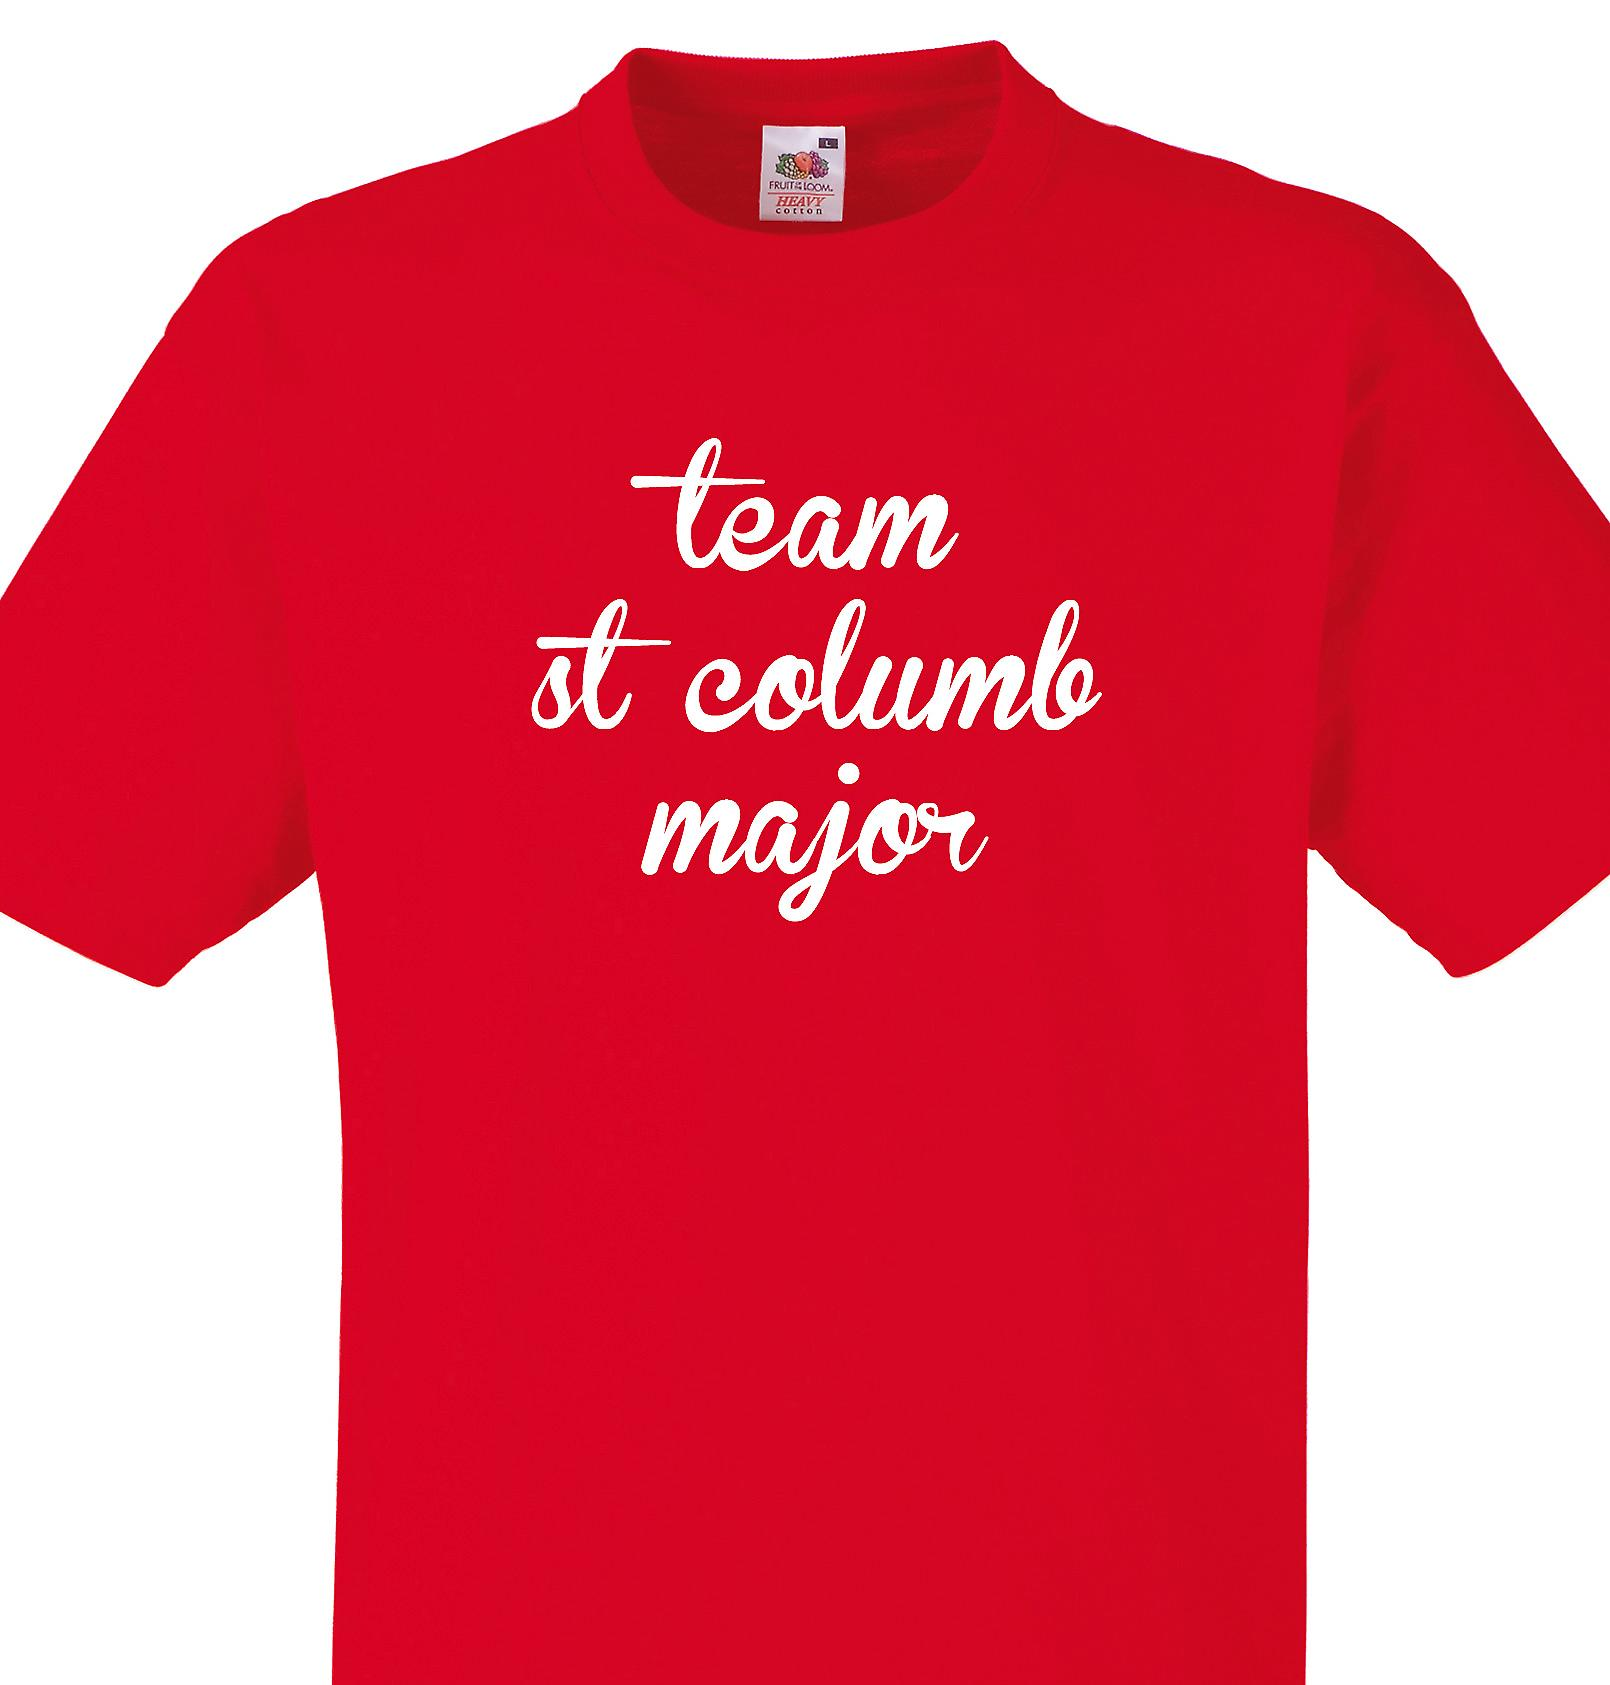 Team St columb major Red T shirt